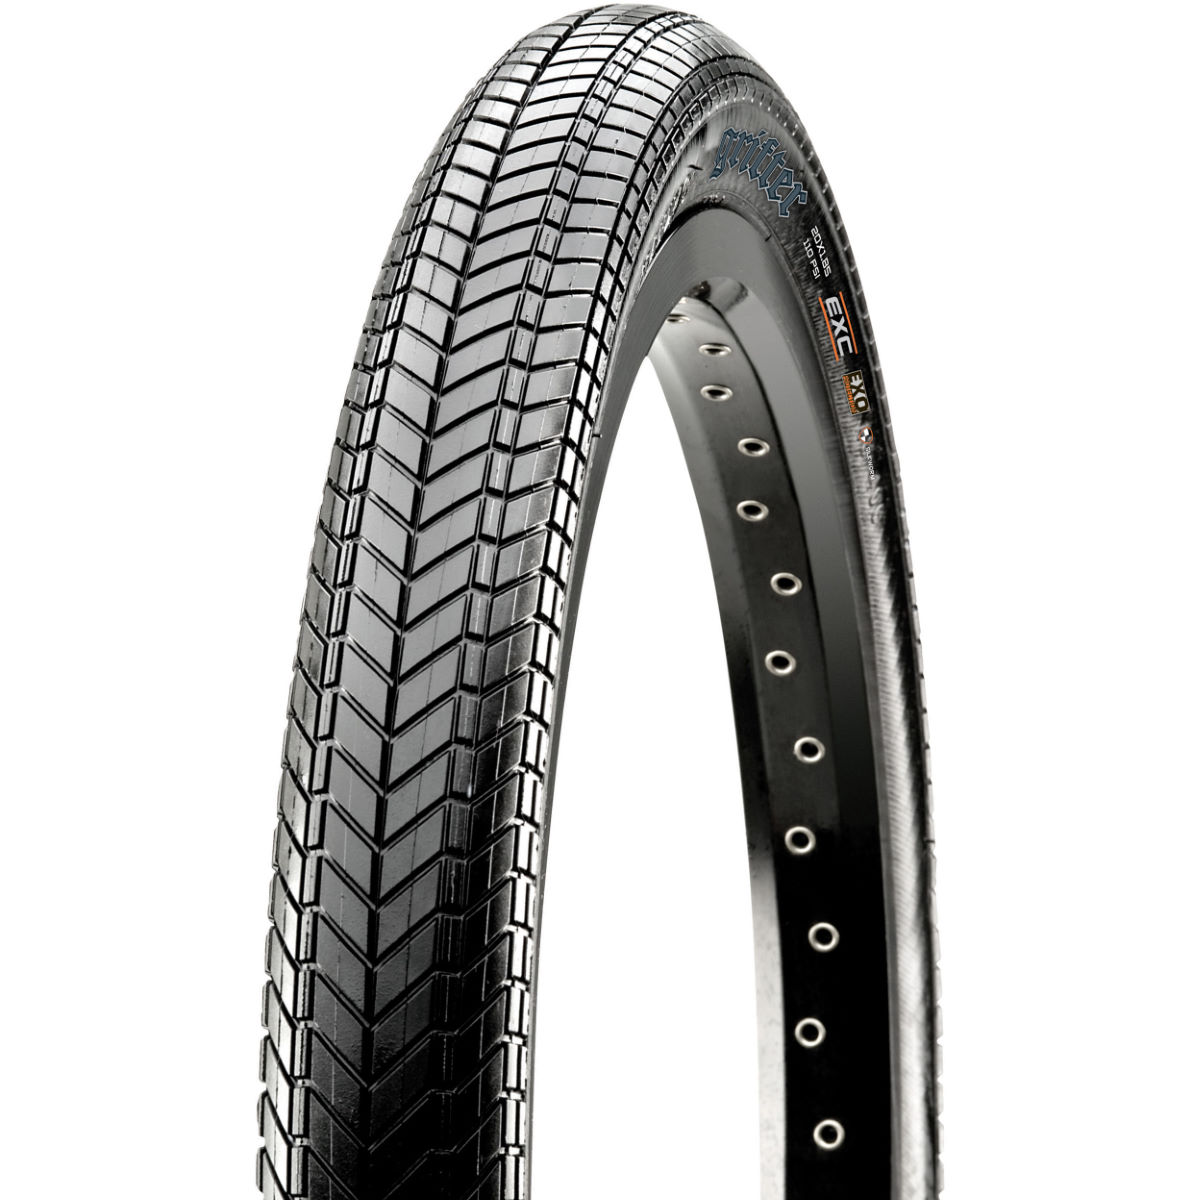 Maxxis  Grifter Wire MTB Tyre   Tyres